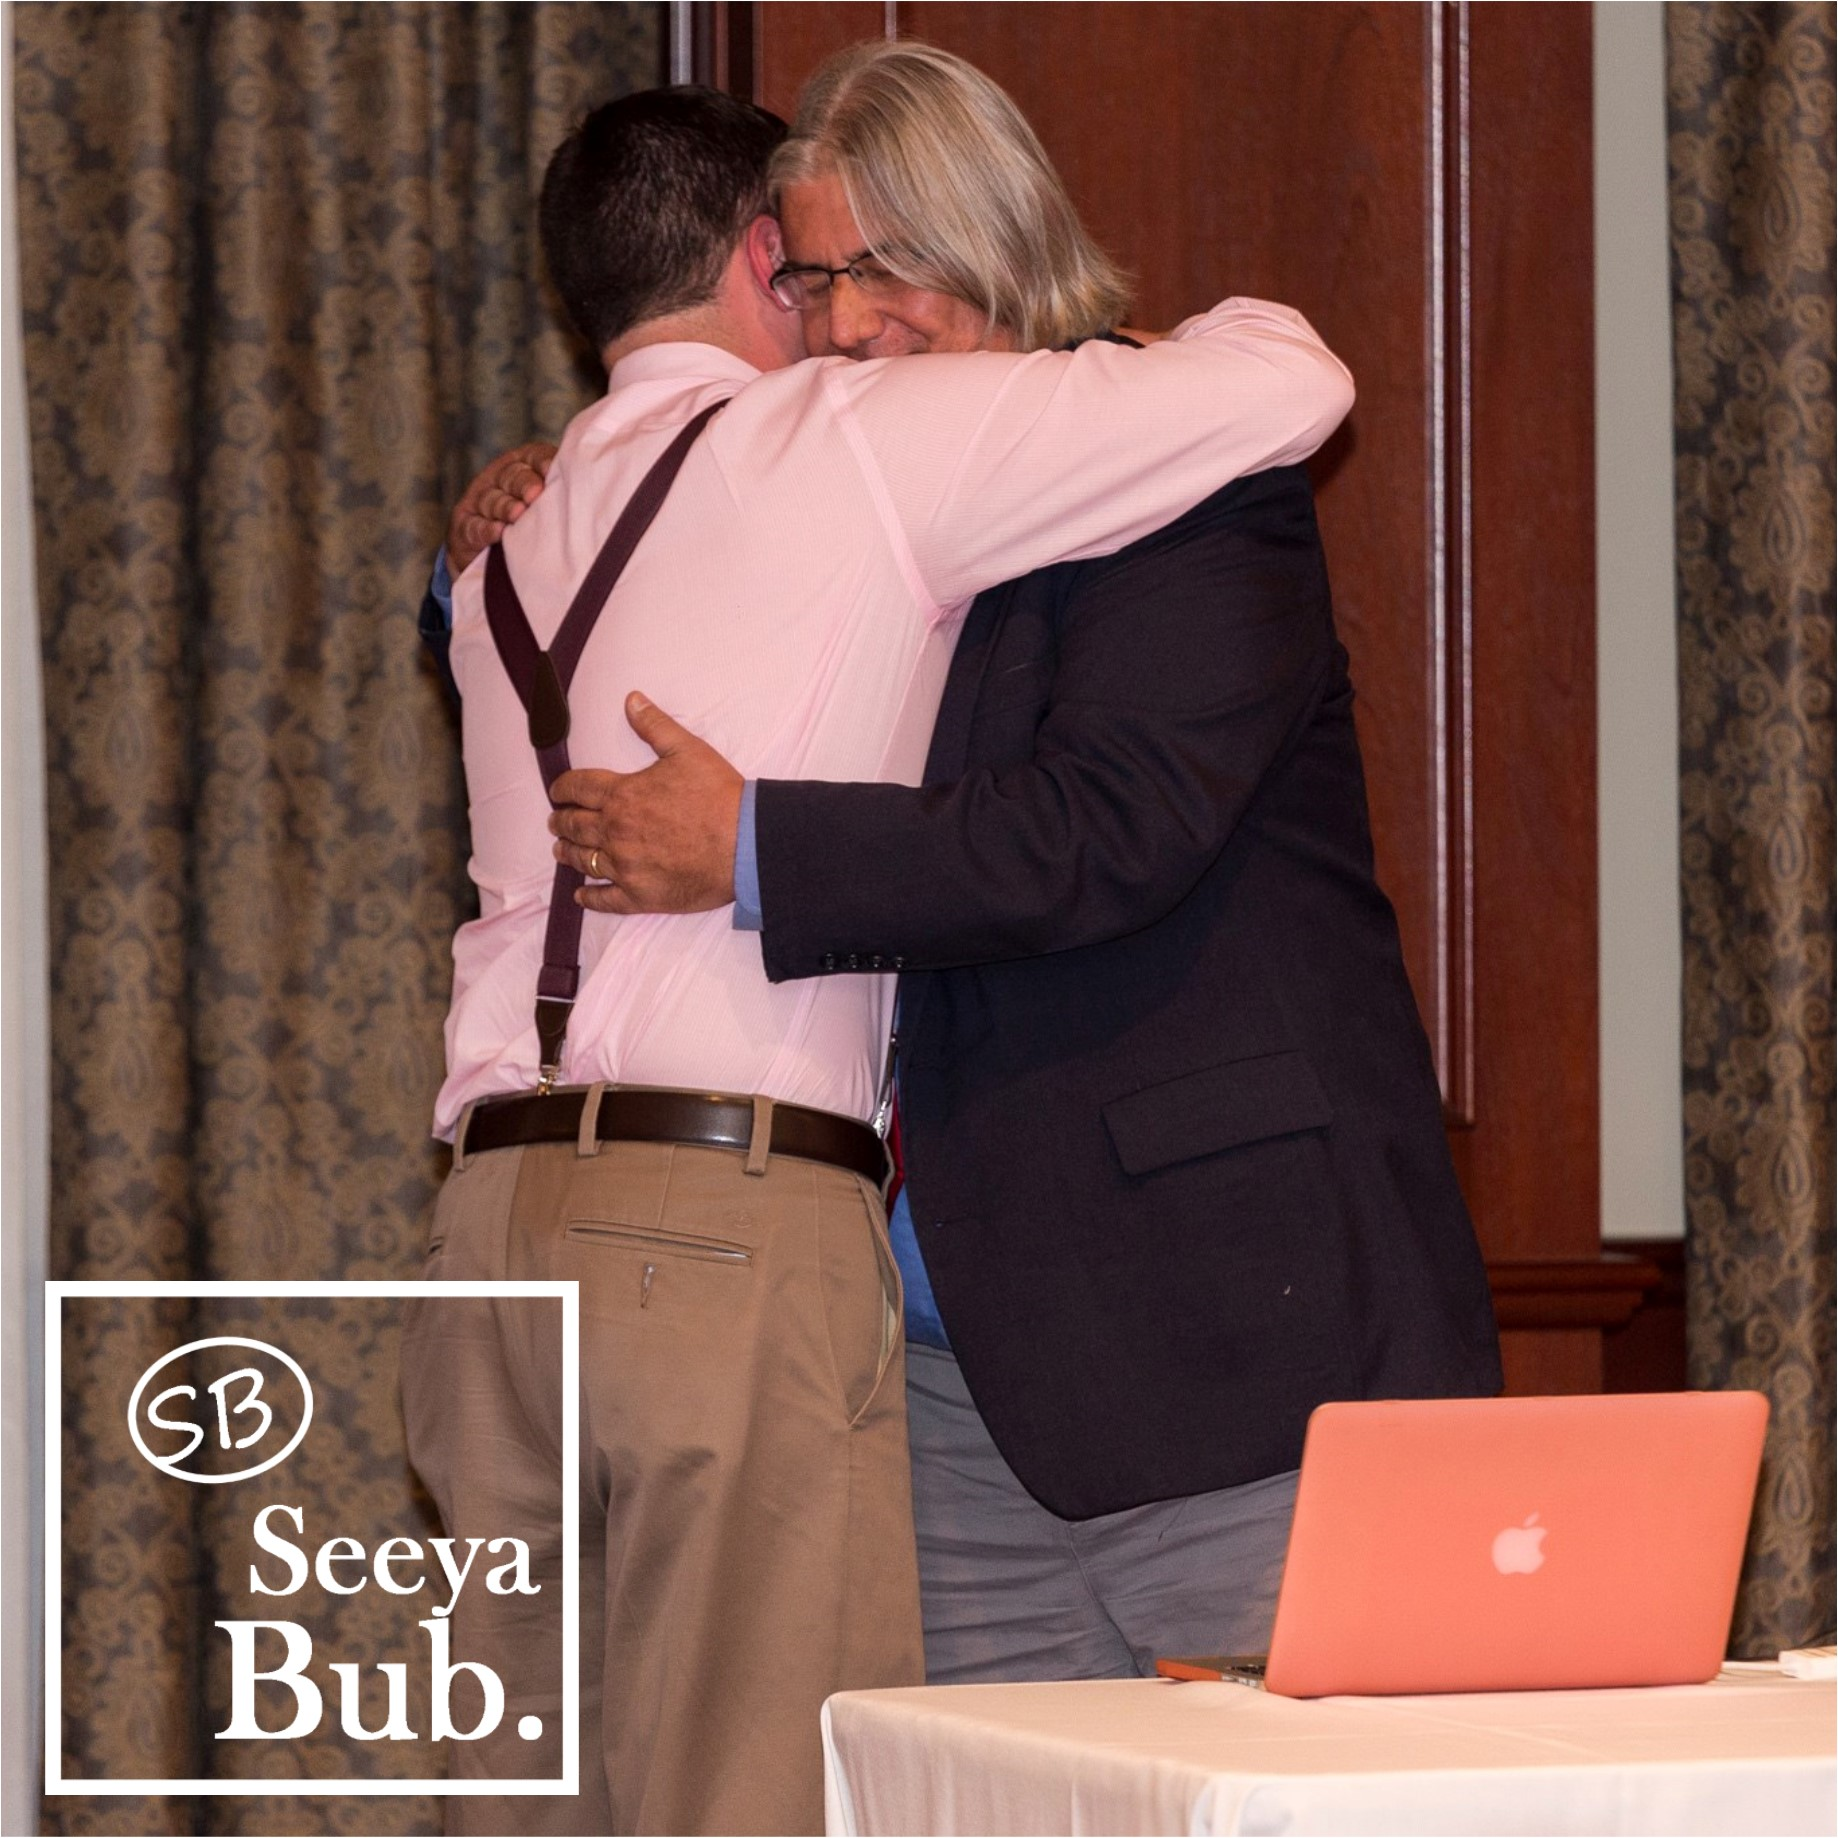 Peter Magolda Hug with SB Logo